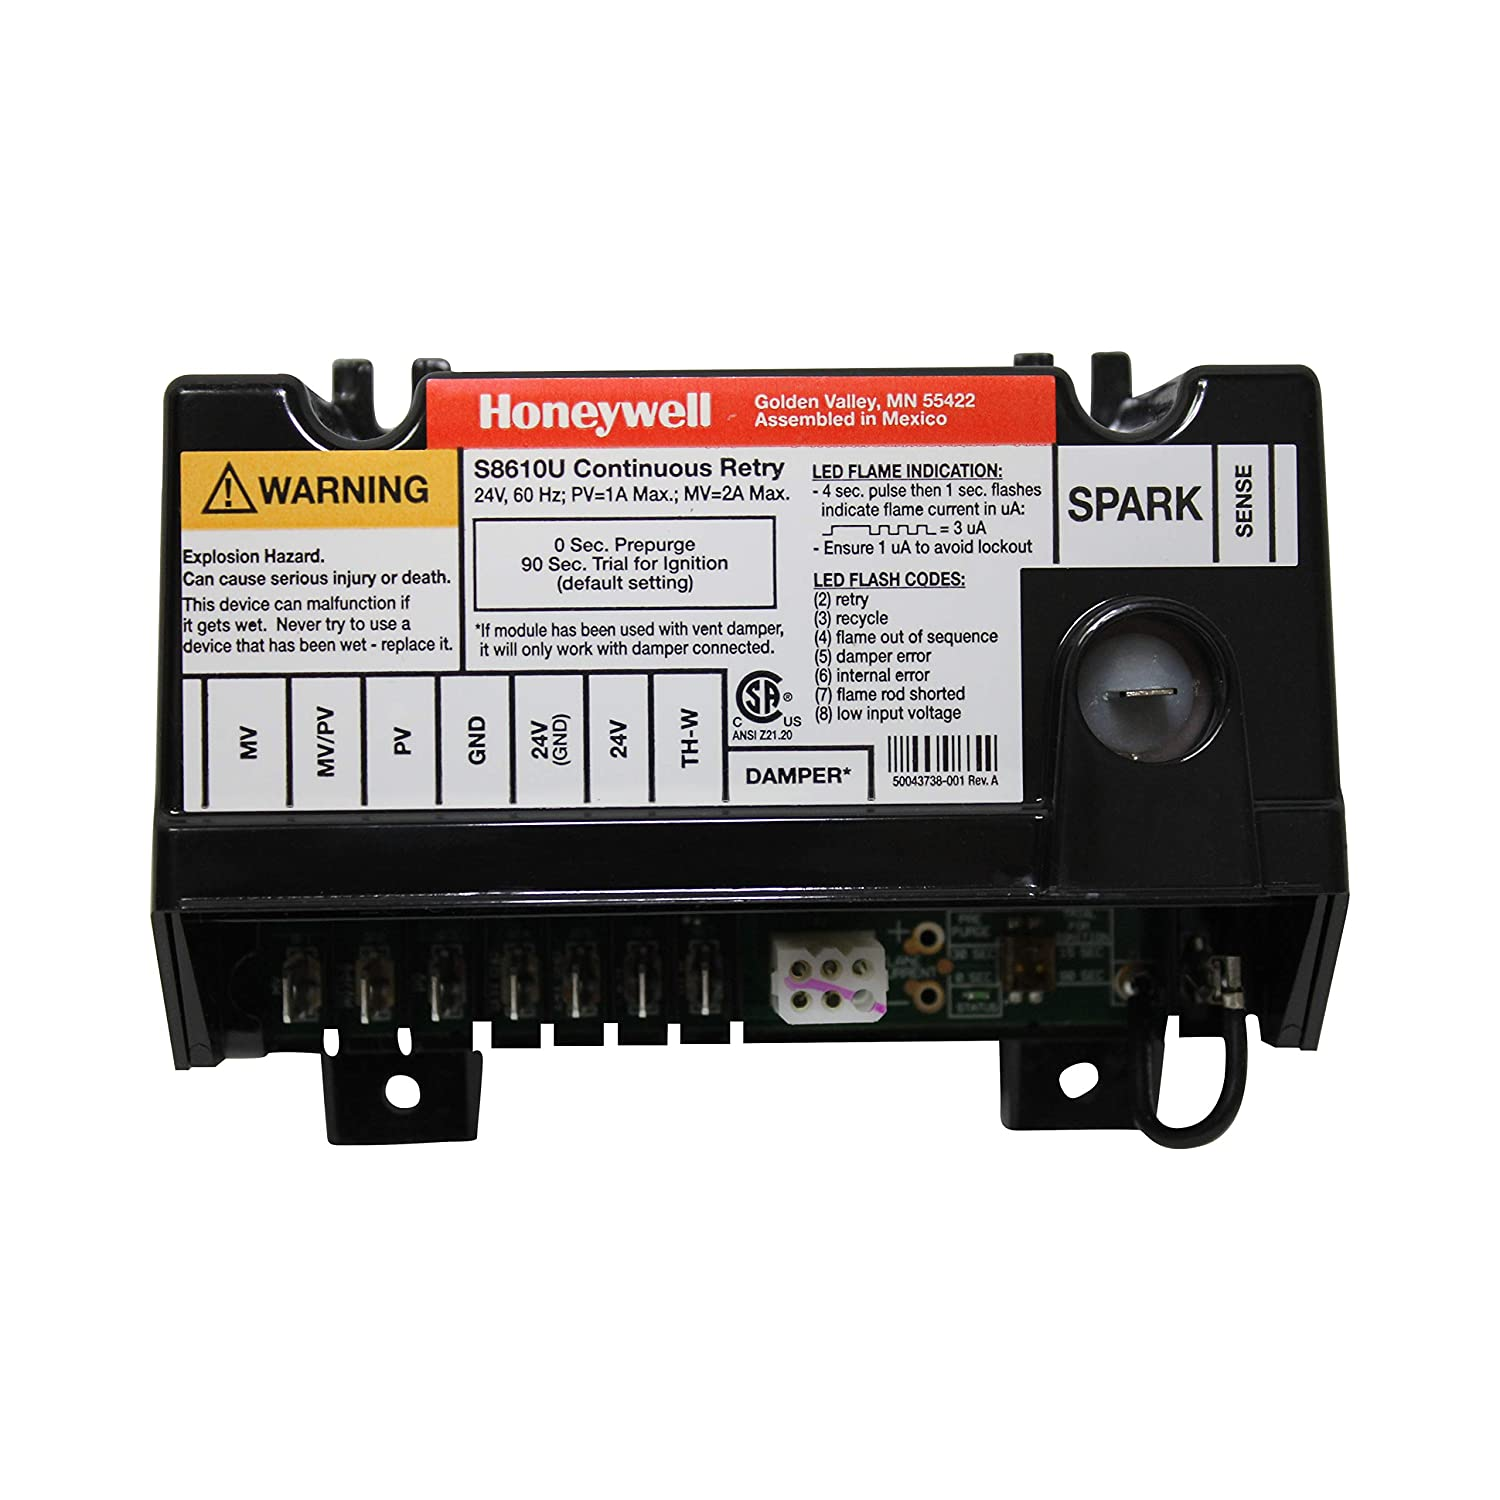 Honeywell S8610u3009 Furnace Intermittent Pilot Control Longwood Wiring Diagram Mkii Replacement Household Ignitors